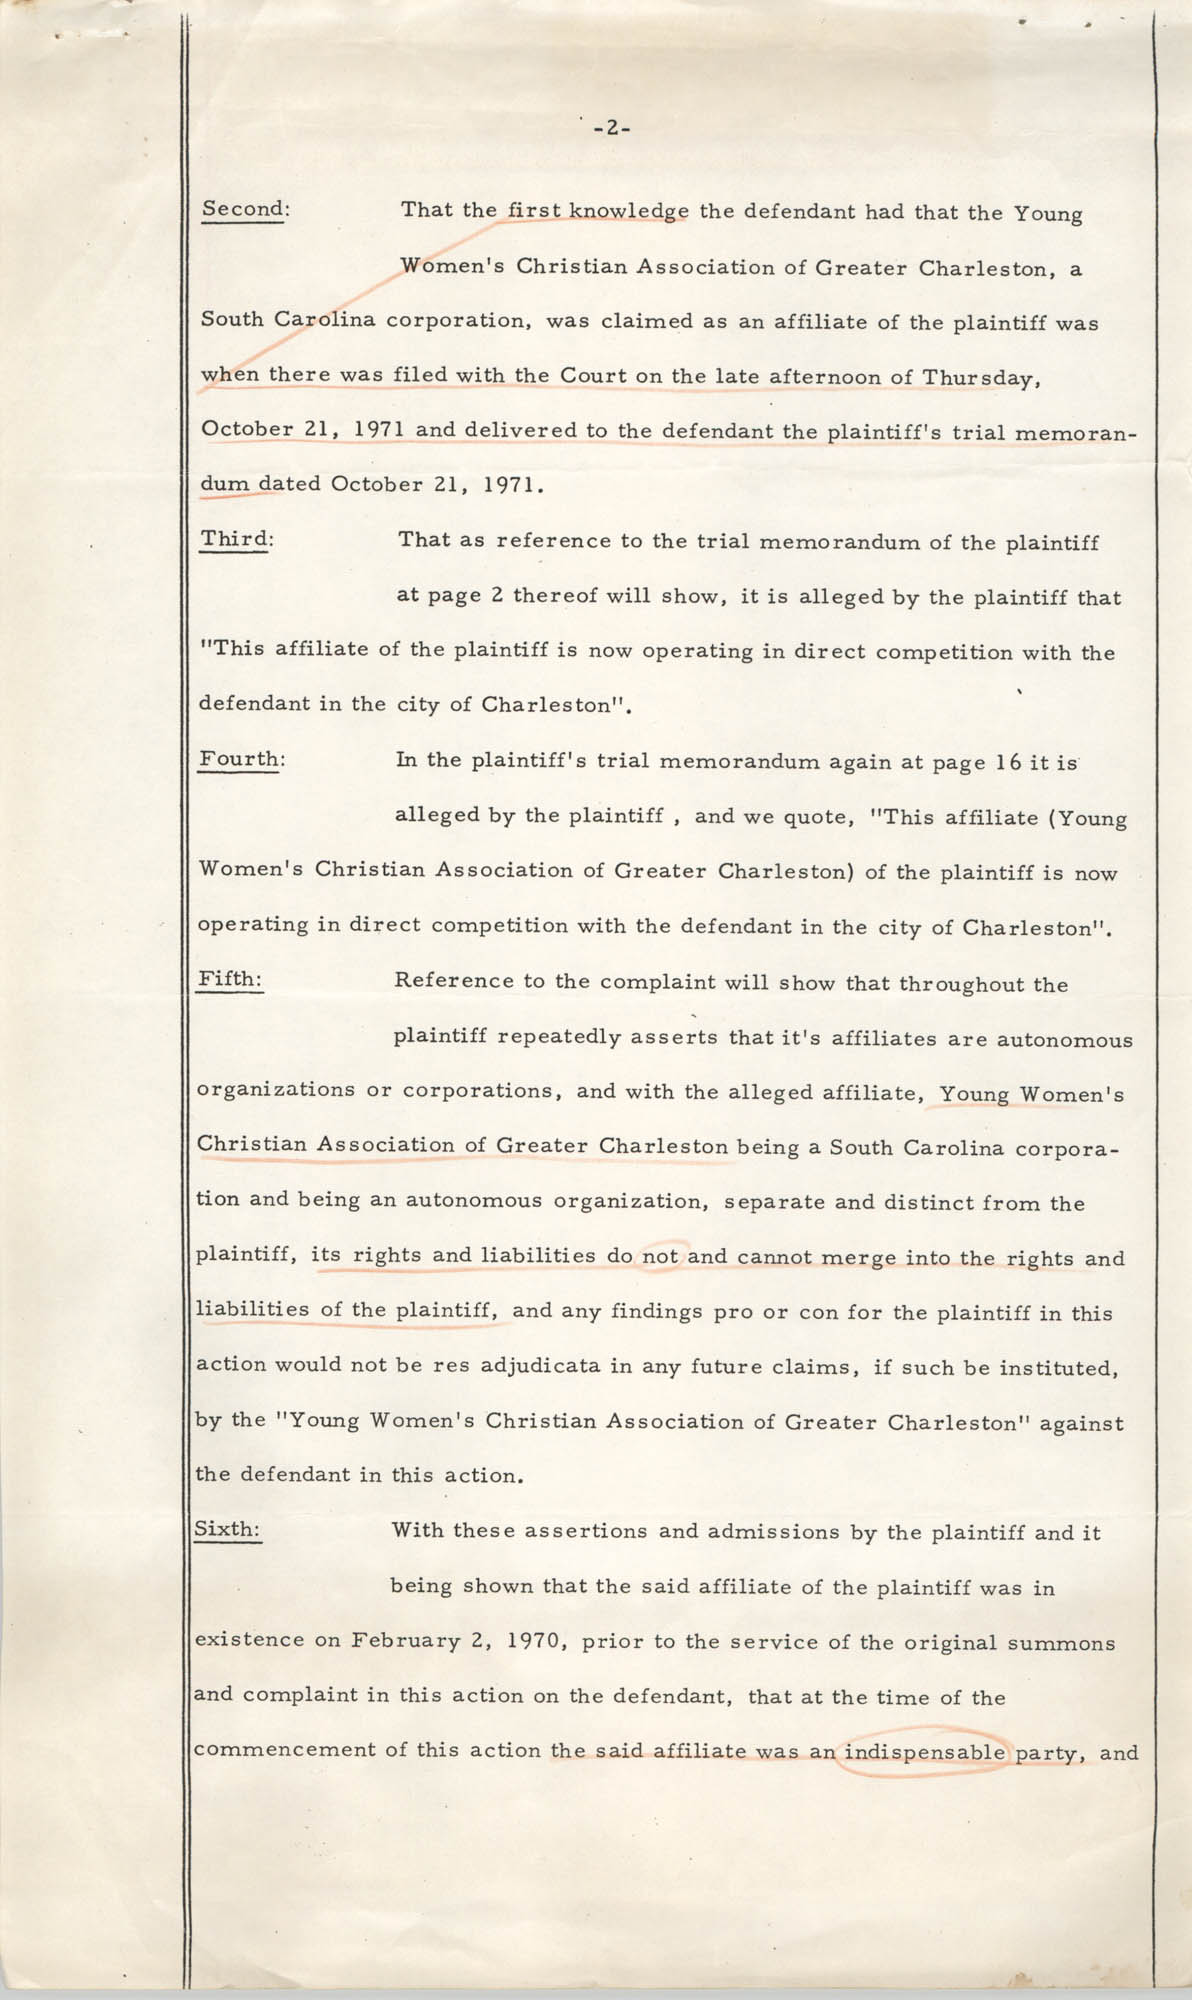 National Board of the Y.W.C.A. of the U.S.A. vs. Y.W.C.A. of Charleston South Carolina, Civil Action No. 70-180, Motion to Dismiss the Action, Page 2